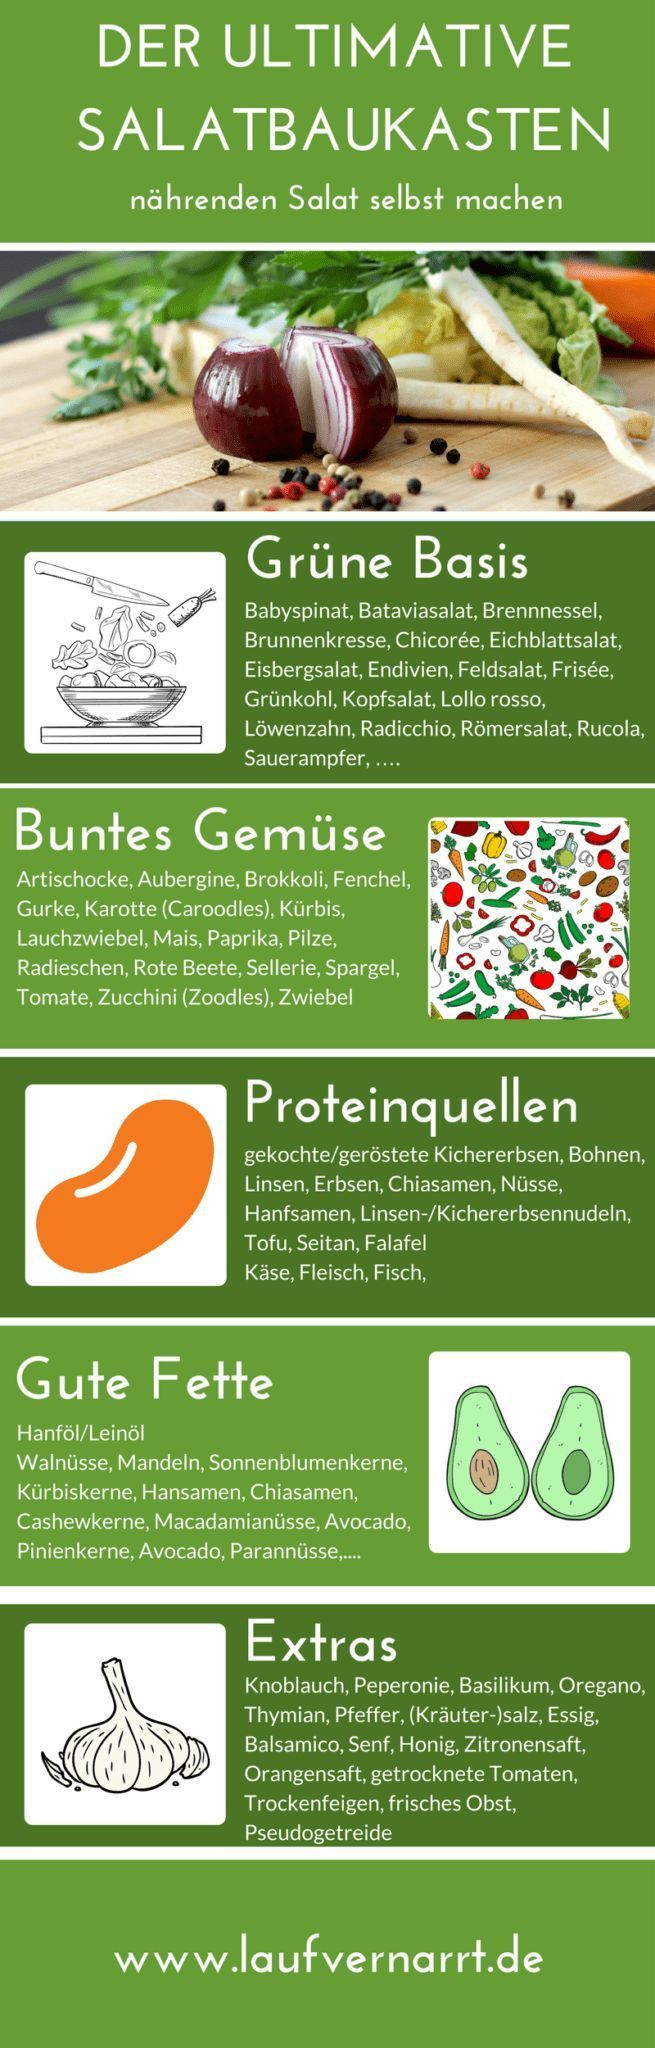 Everything about Salad incl. Printable - 30 days change of diet Day 16 - fond of running, #change #day #Days #DIET #fond #incl #Printable #running #Salad